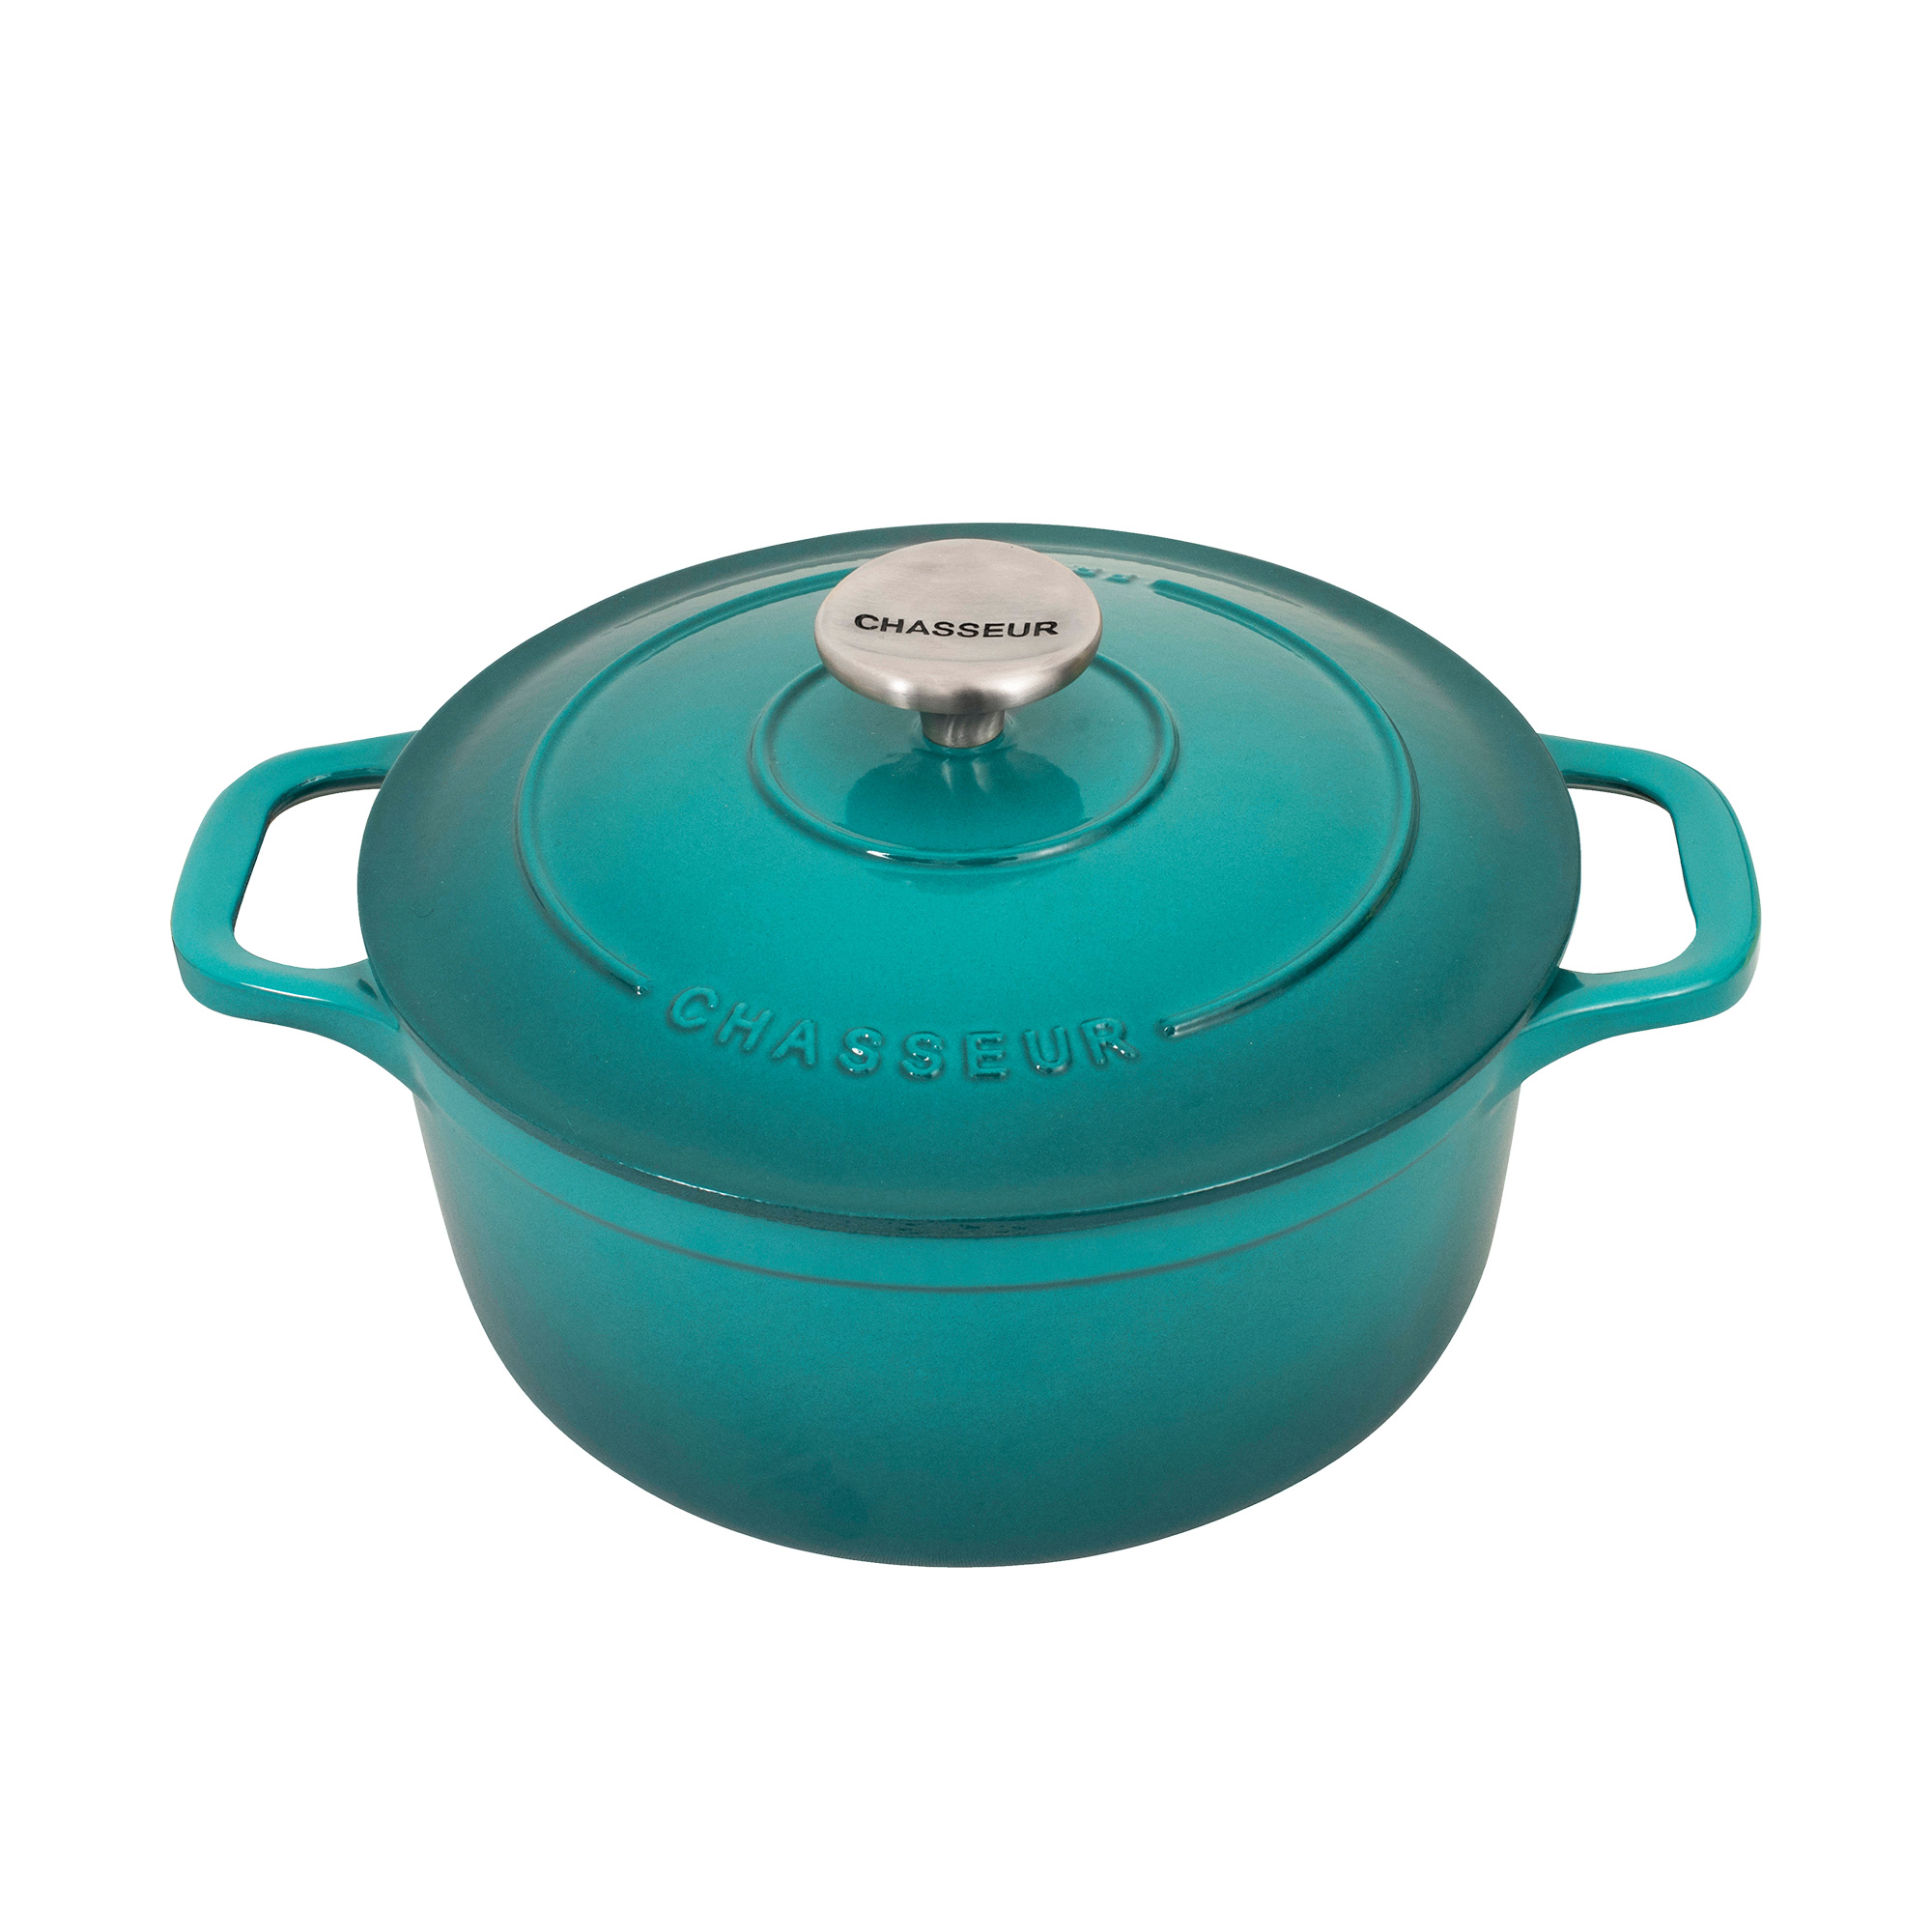 Chasseur Round French Oven 28cm - 6.1L Mediterranean Blue